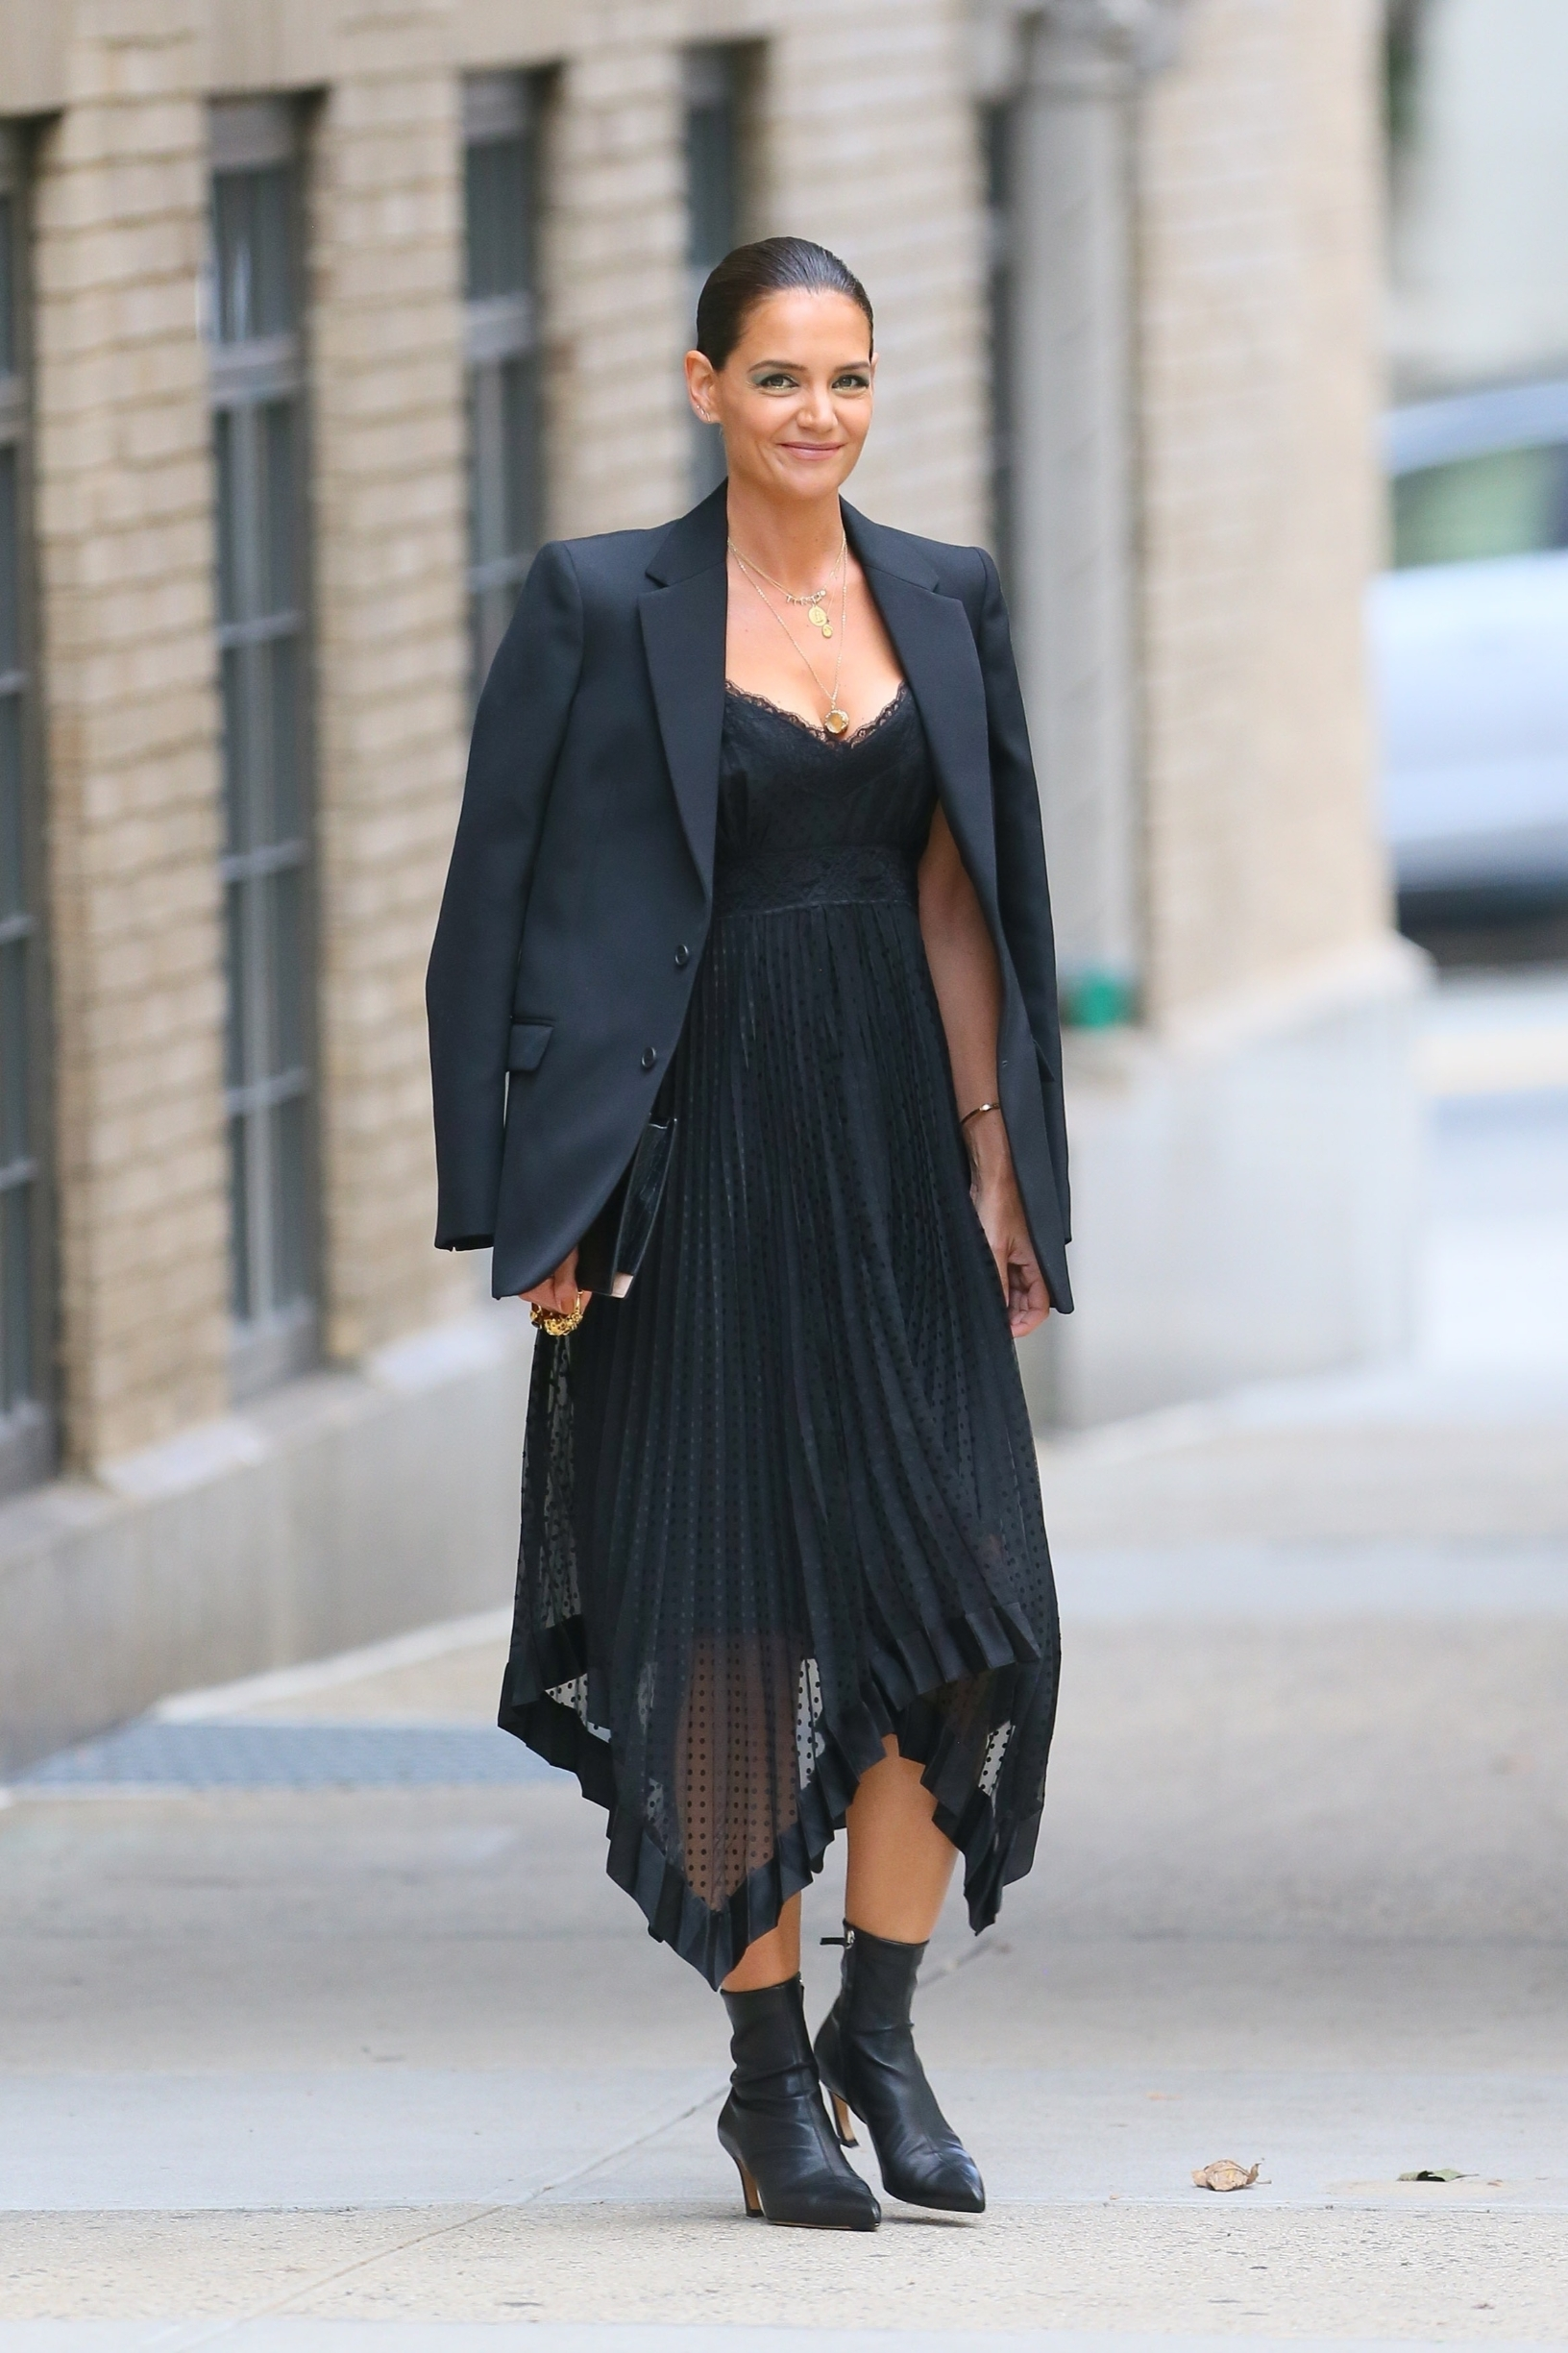 New York, NY  - Actress and model Katie Holmes is all prepped for a fashionable event at Zimmermann in NYC. The mother, actress, and model, leaves her apartment with natural-looking make-up accentuated with smokey eyeshadow.  BACKGRID USA 4 SEPTEMBER 2019, Image: 469176334, License: Rights-managed, Restrictions: , Model Release: no, Credit line: Profimedia, Backgrid USA